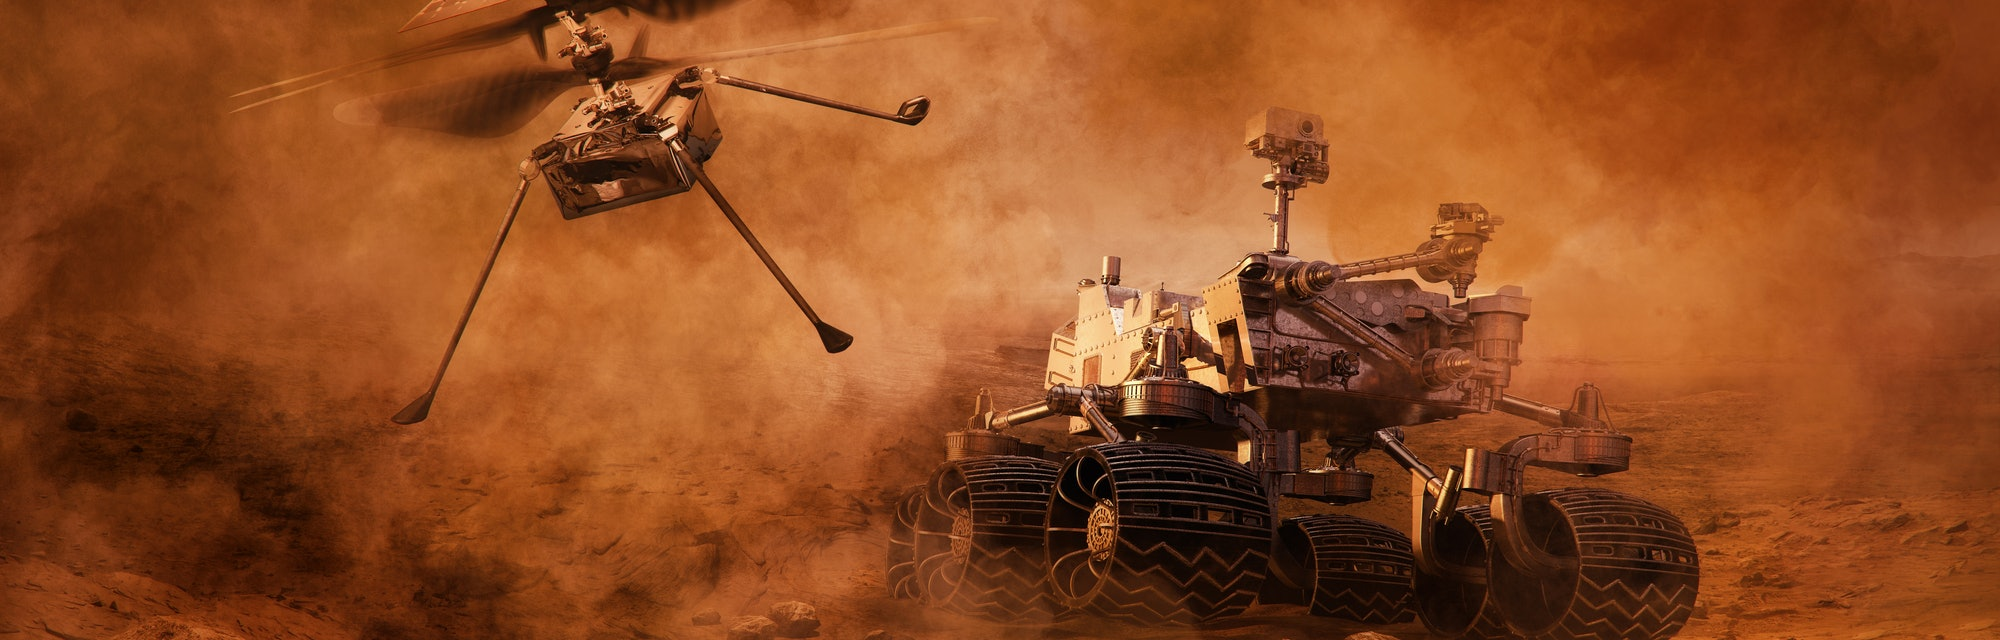 Mars rover and helicopter drone exploring surface of Mars. Image of automated robotic space autonomous vehicle on the red Mars planet. Universe, space exploration, astronomy science concept. 3D render